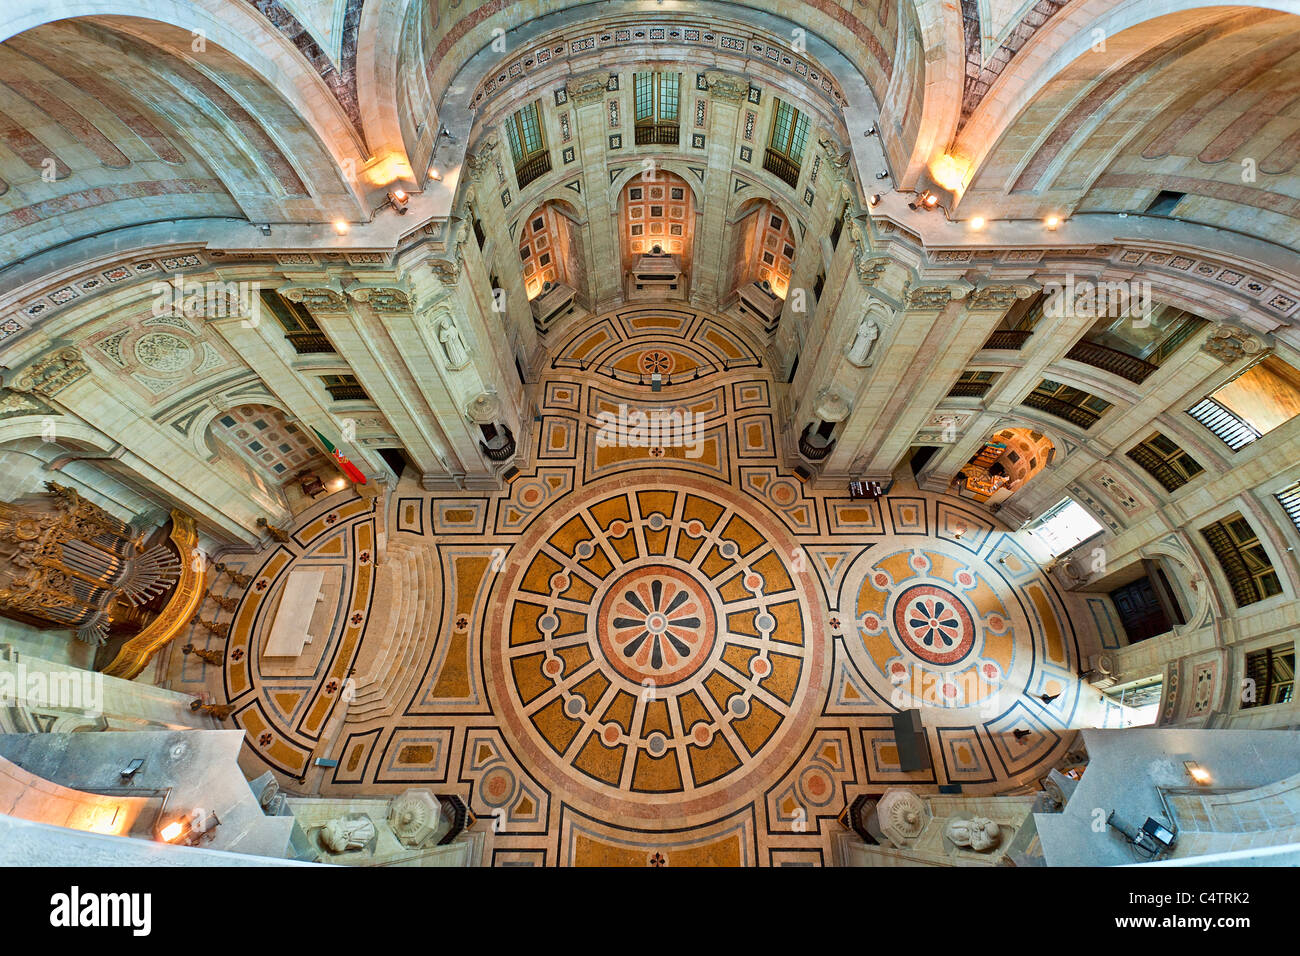 Europe, Portugal, Lisbon, The Pantheon, Church of San Engracia in Alfama district - Stock Image